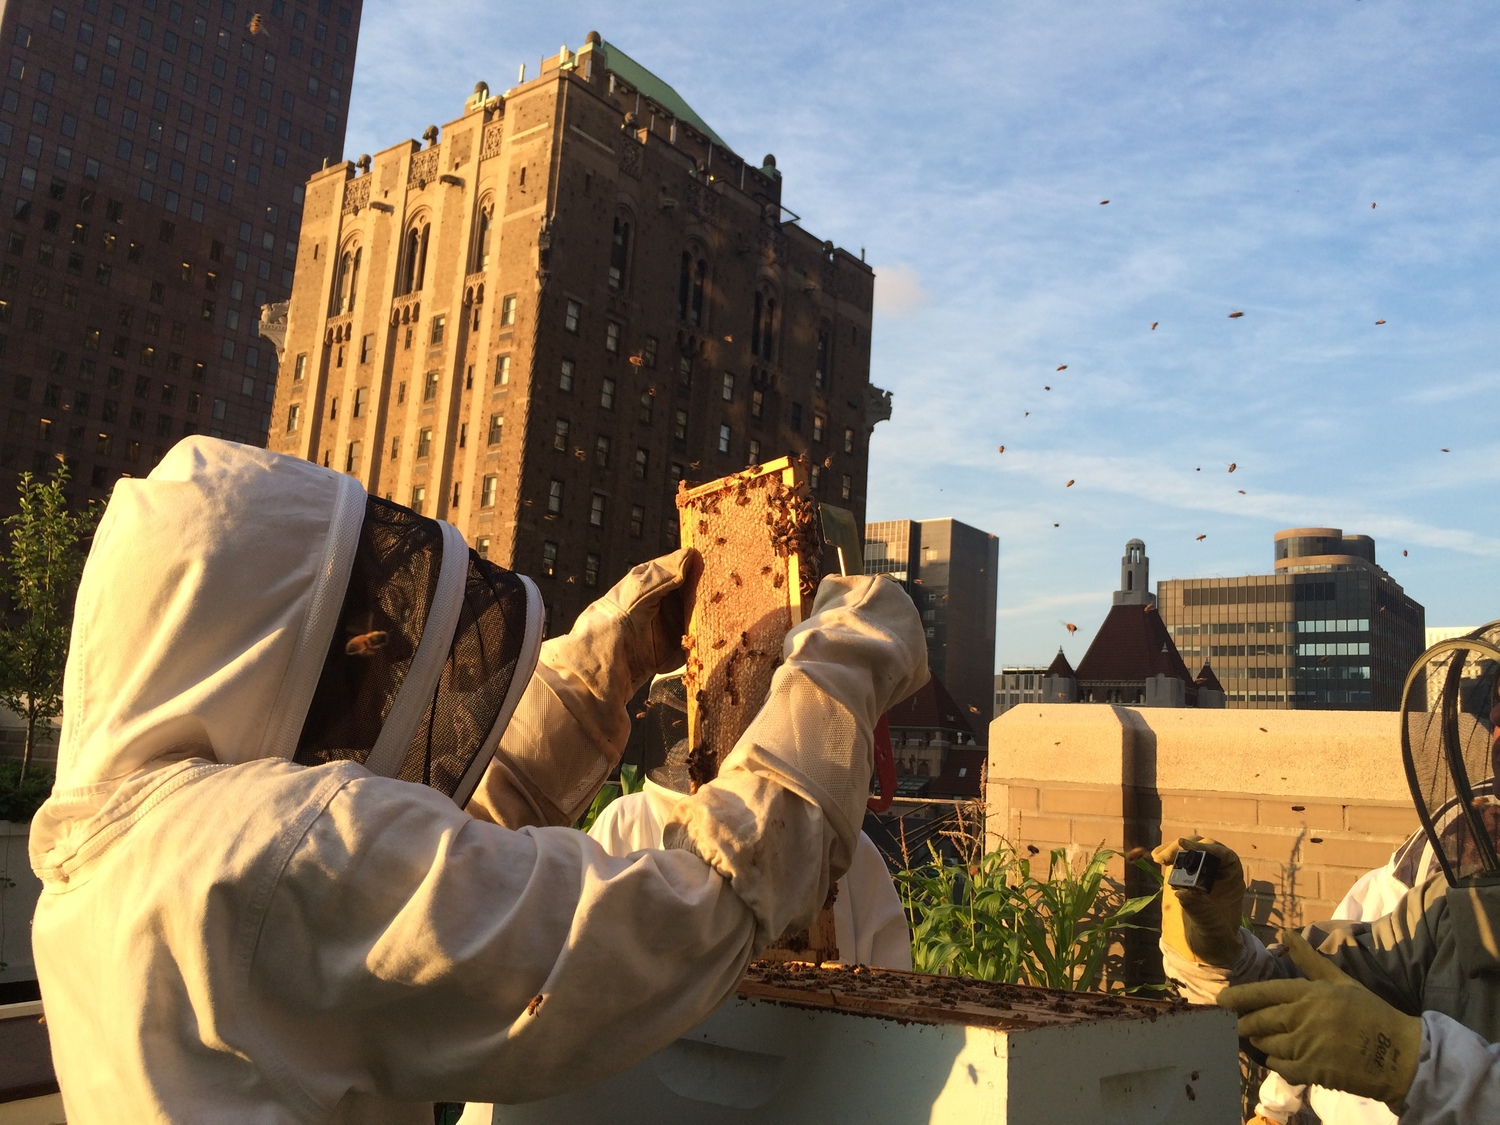 One of the most interesting things to do in the outdoors of NYC is beekeeping!